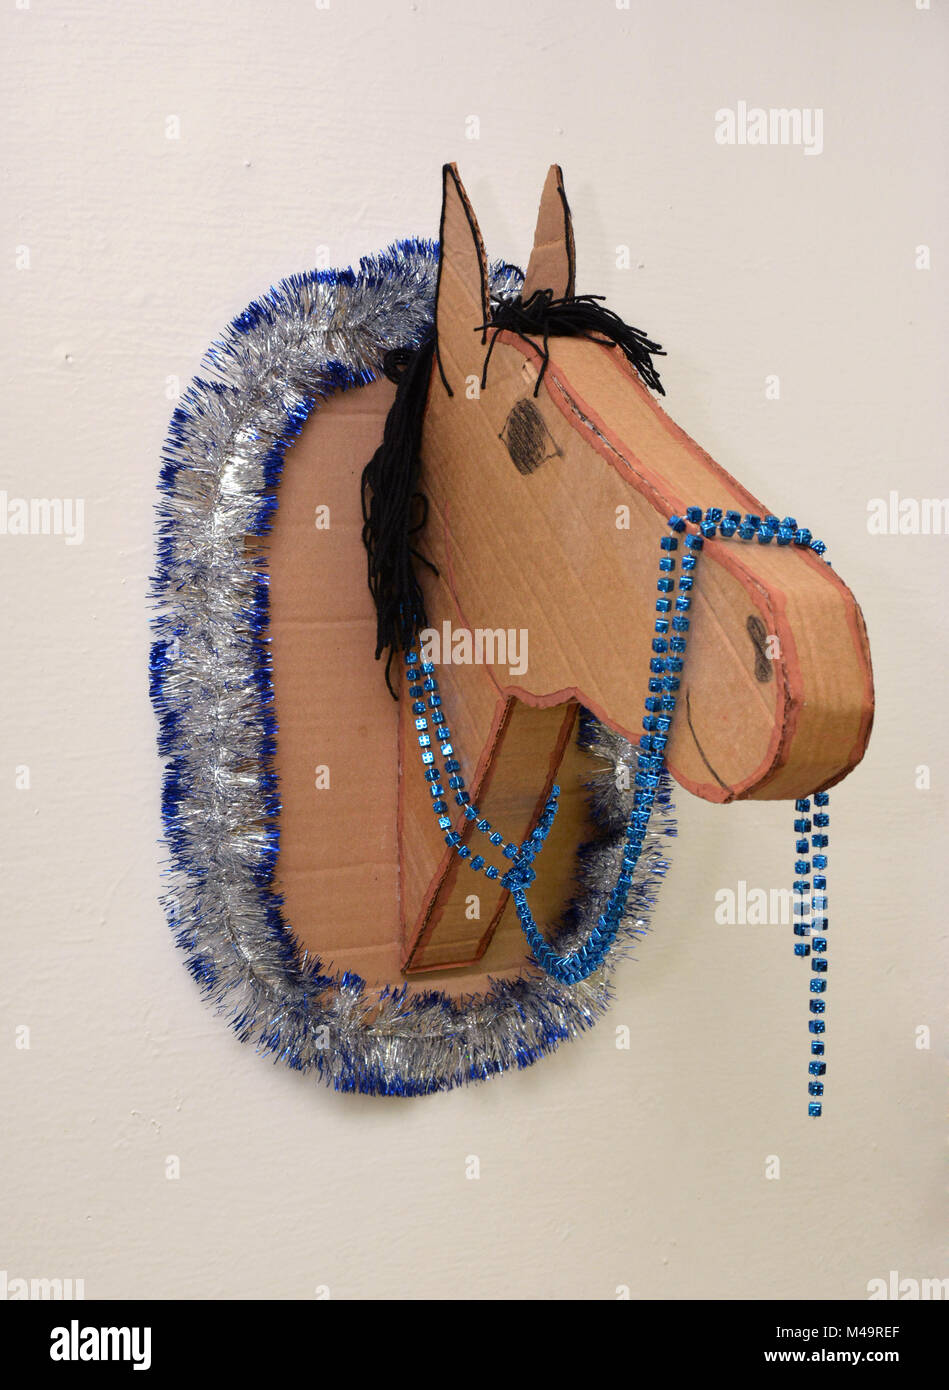 The Horse S Head Made Of Cardboard Packaging Stock Photo Alamy